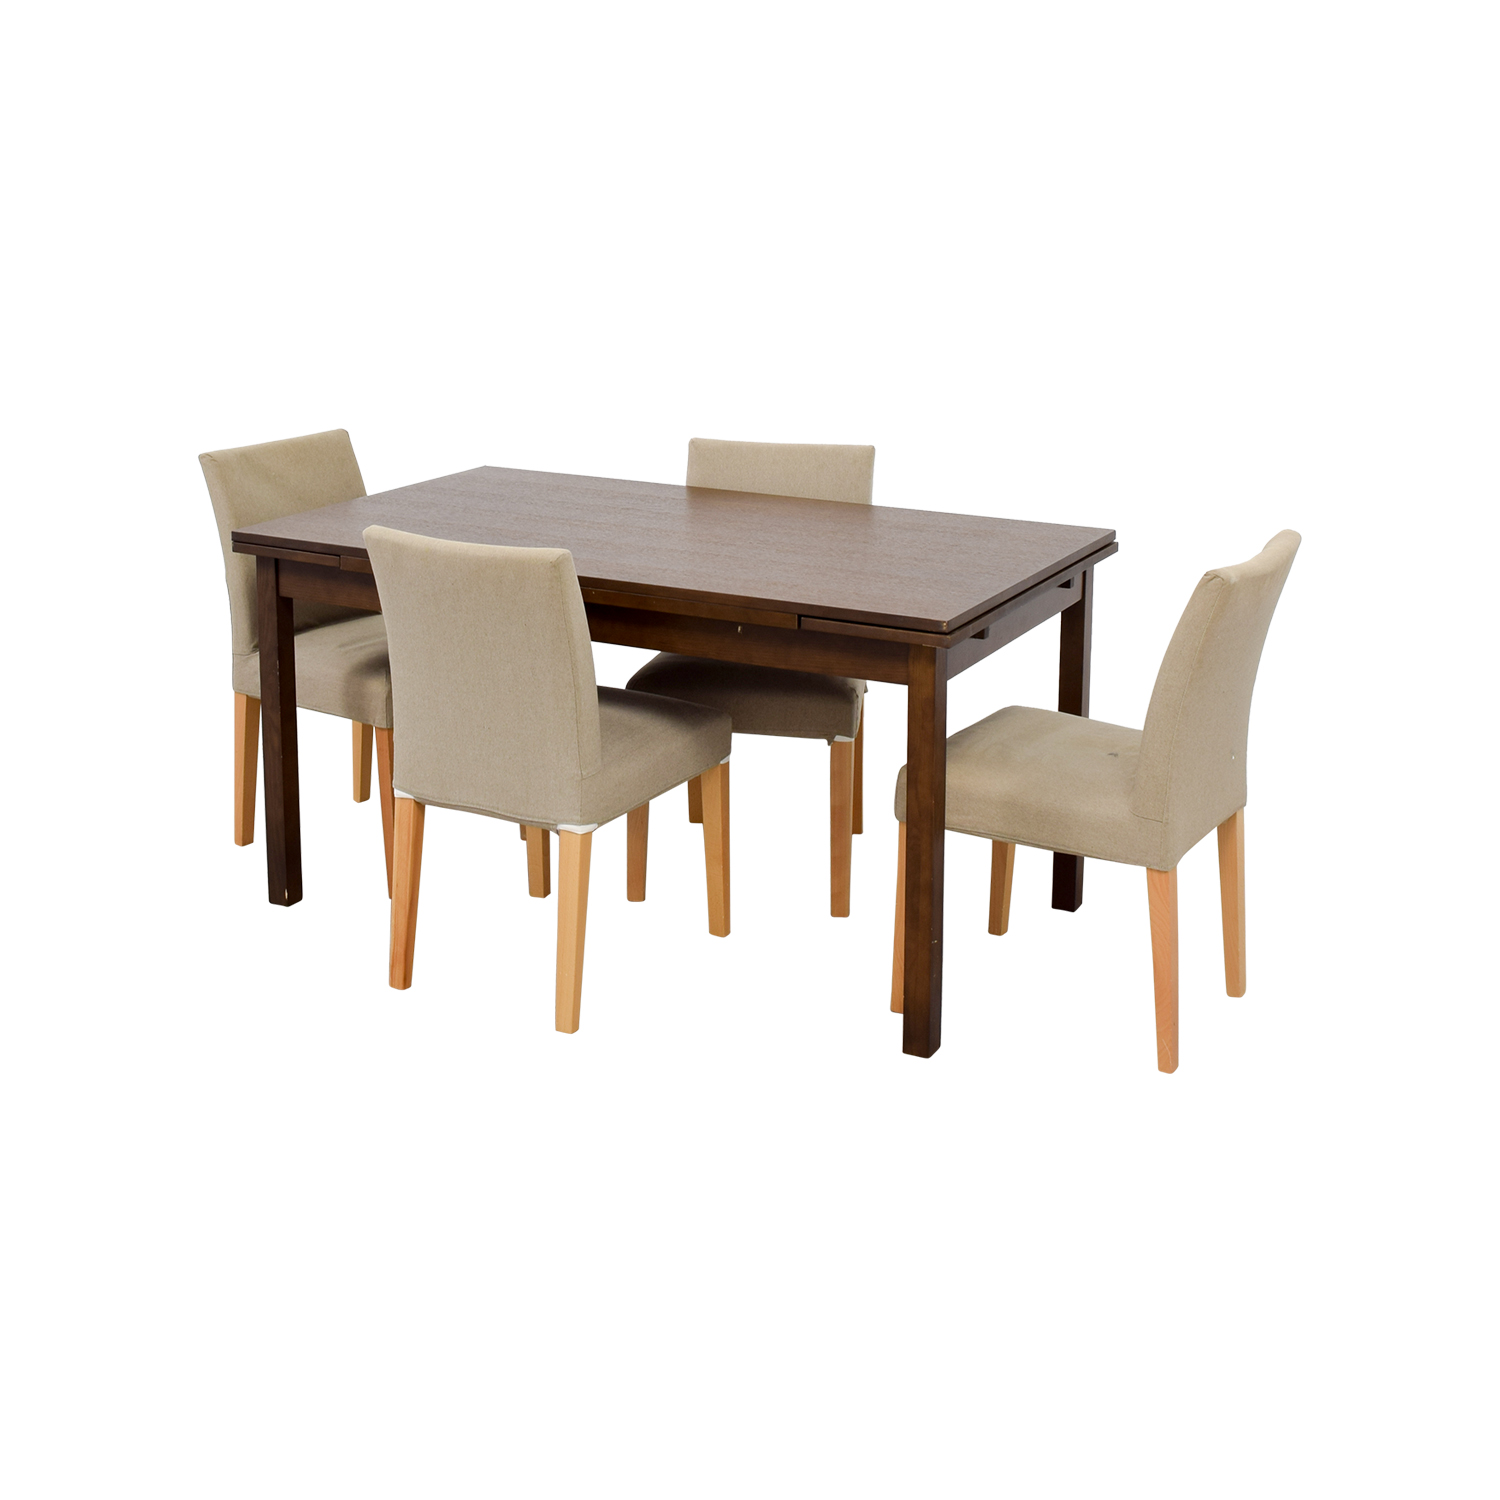 73 OFF Muji Muji Extendable Dining Table with Chairs  : second hand muji extendable dining table with chairs from www.furnishare.com size 1500 x 1500 jpeg 409kB